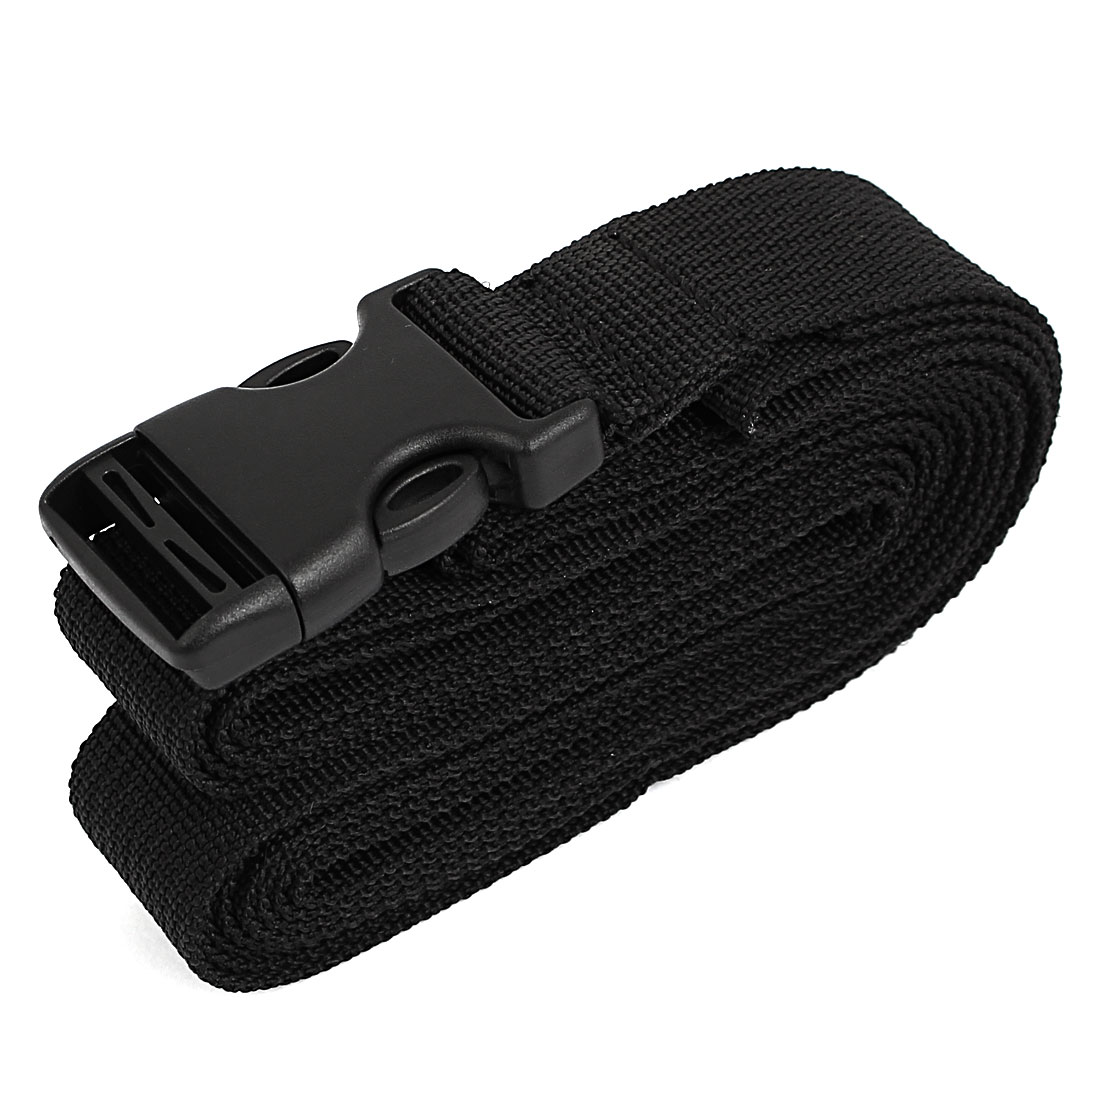 Quick Release Buckle Luggage Suitcase Backpack Baggage Adjustable Belt Strap Black 3 Meter